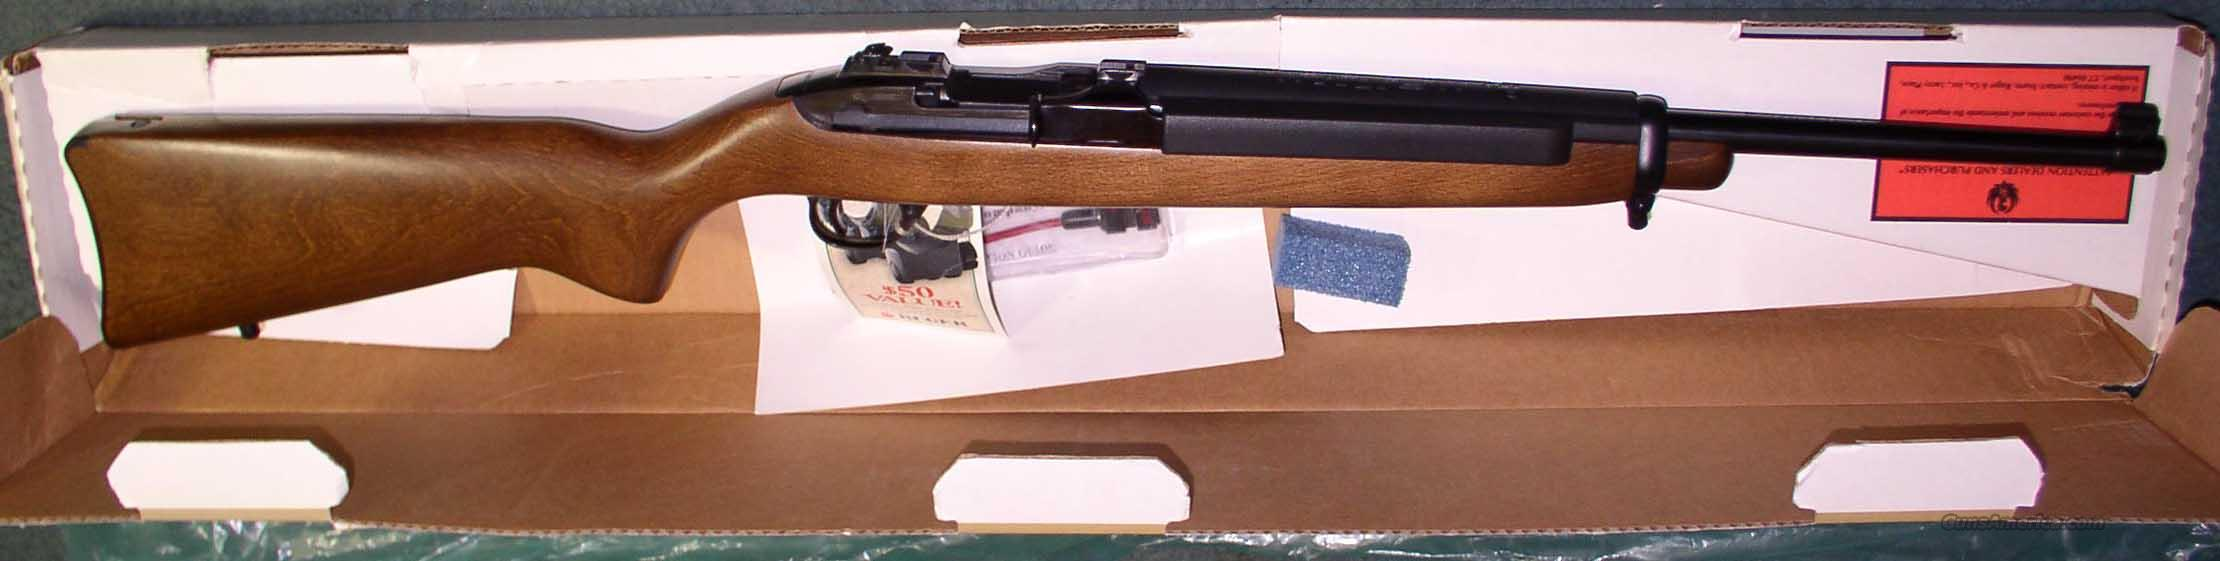 RUGER DEERFIELD NEW IN BOX 99/44  Guns > Rifles > Ruger Rifles > M44/Carbine